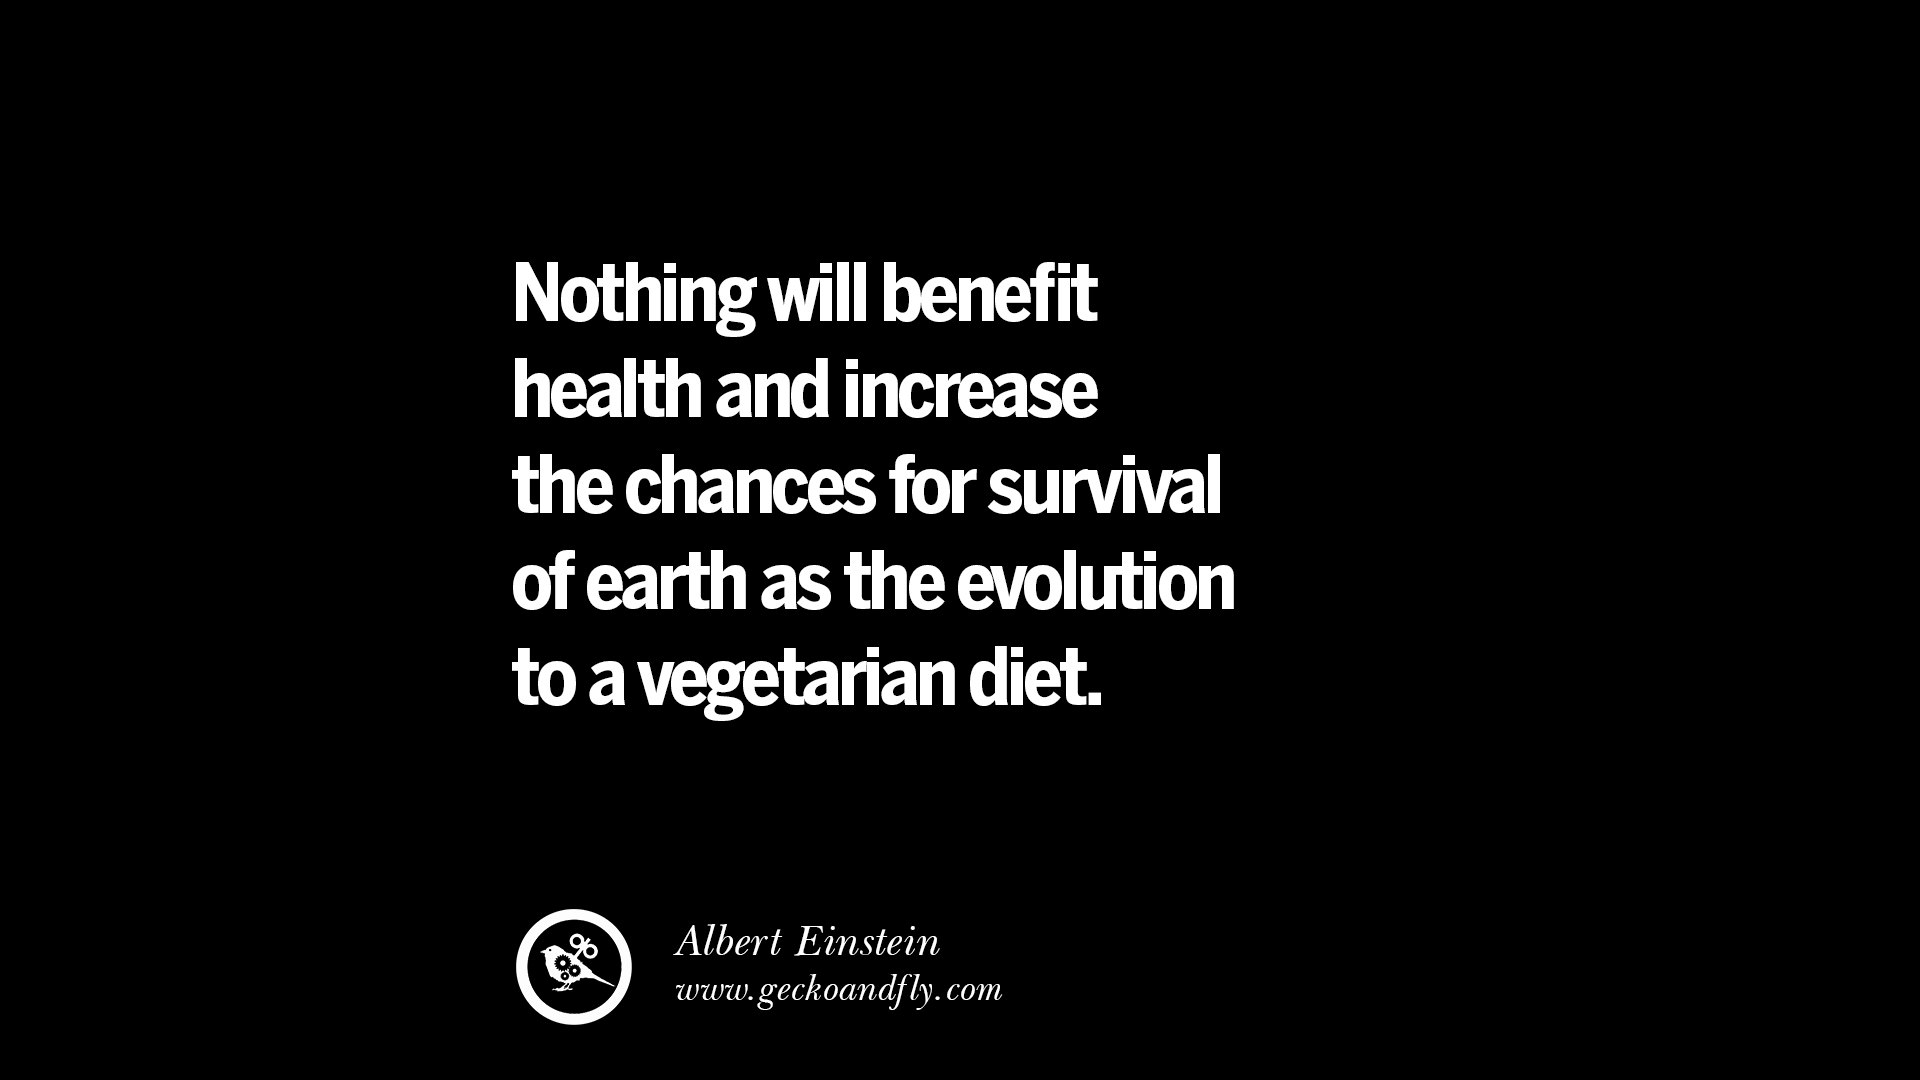 Vegan Quotes 8 Quotes On Vegetarianism Being A Vegetarian And Killing Animals